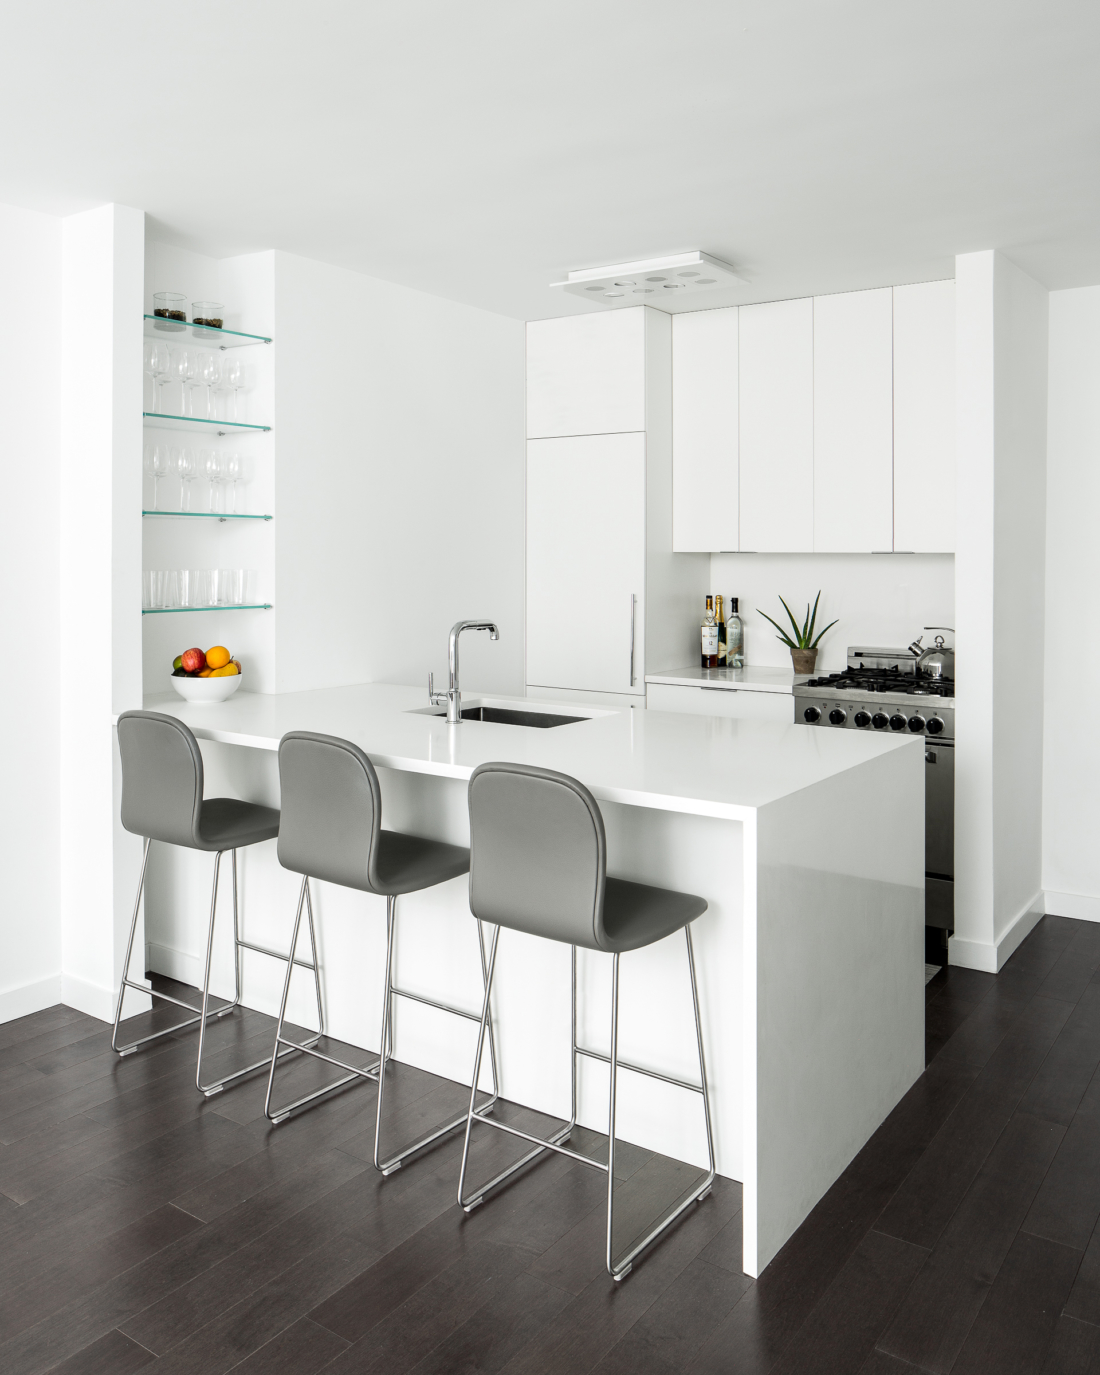 SB_JBA_320-kitchen-white-back--1100x1375.jpg